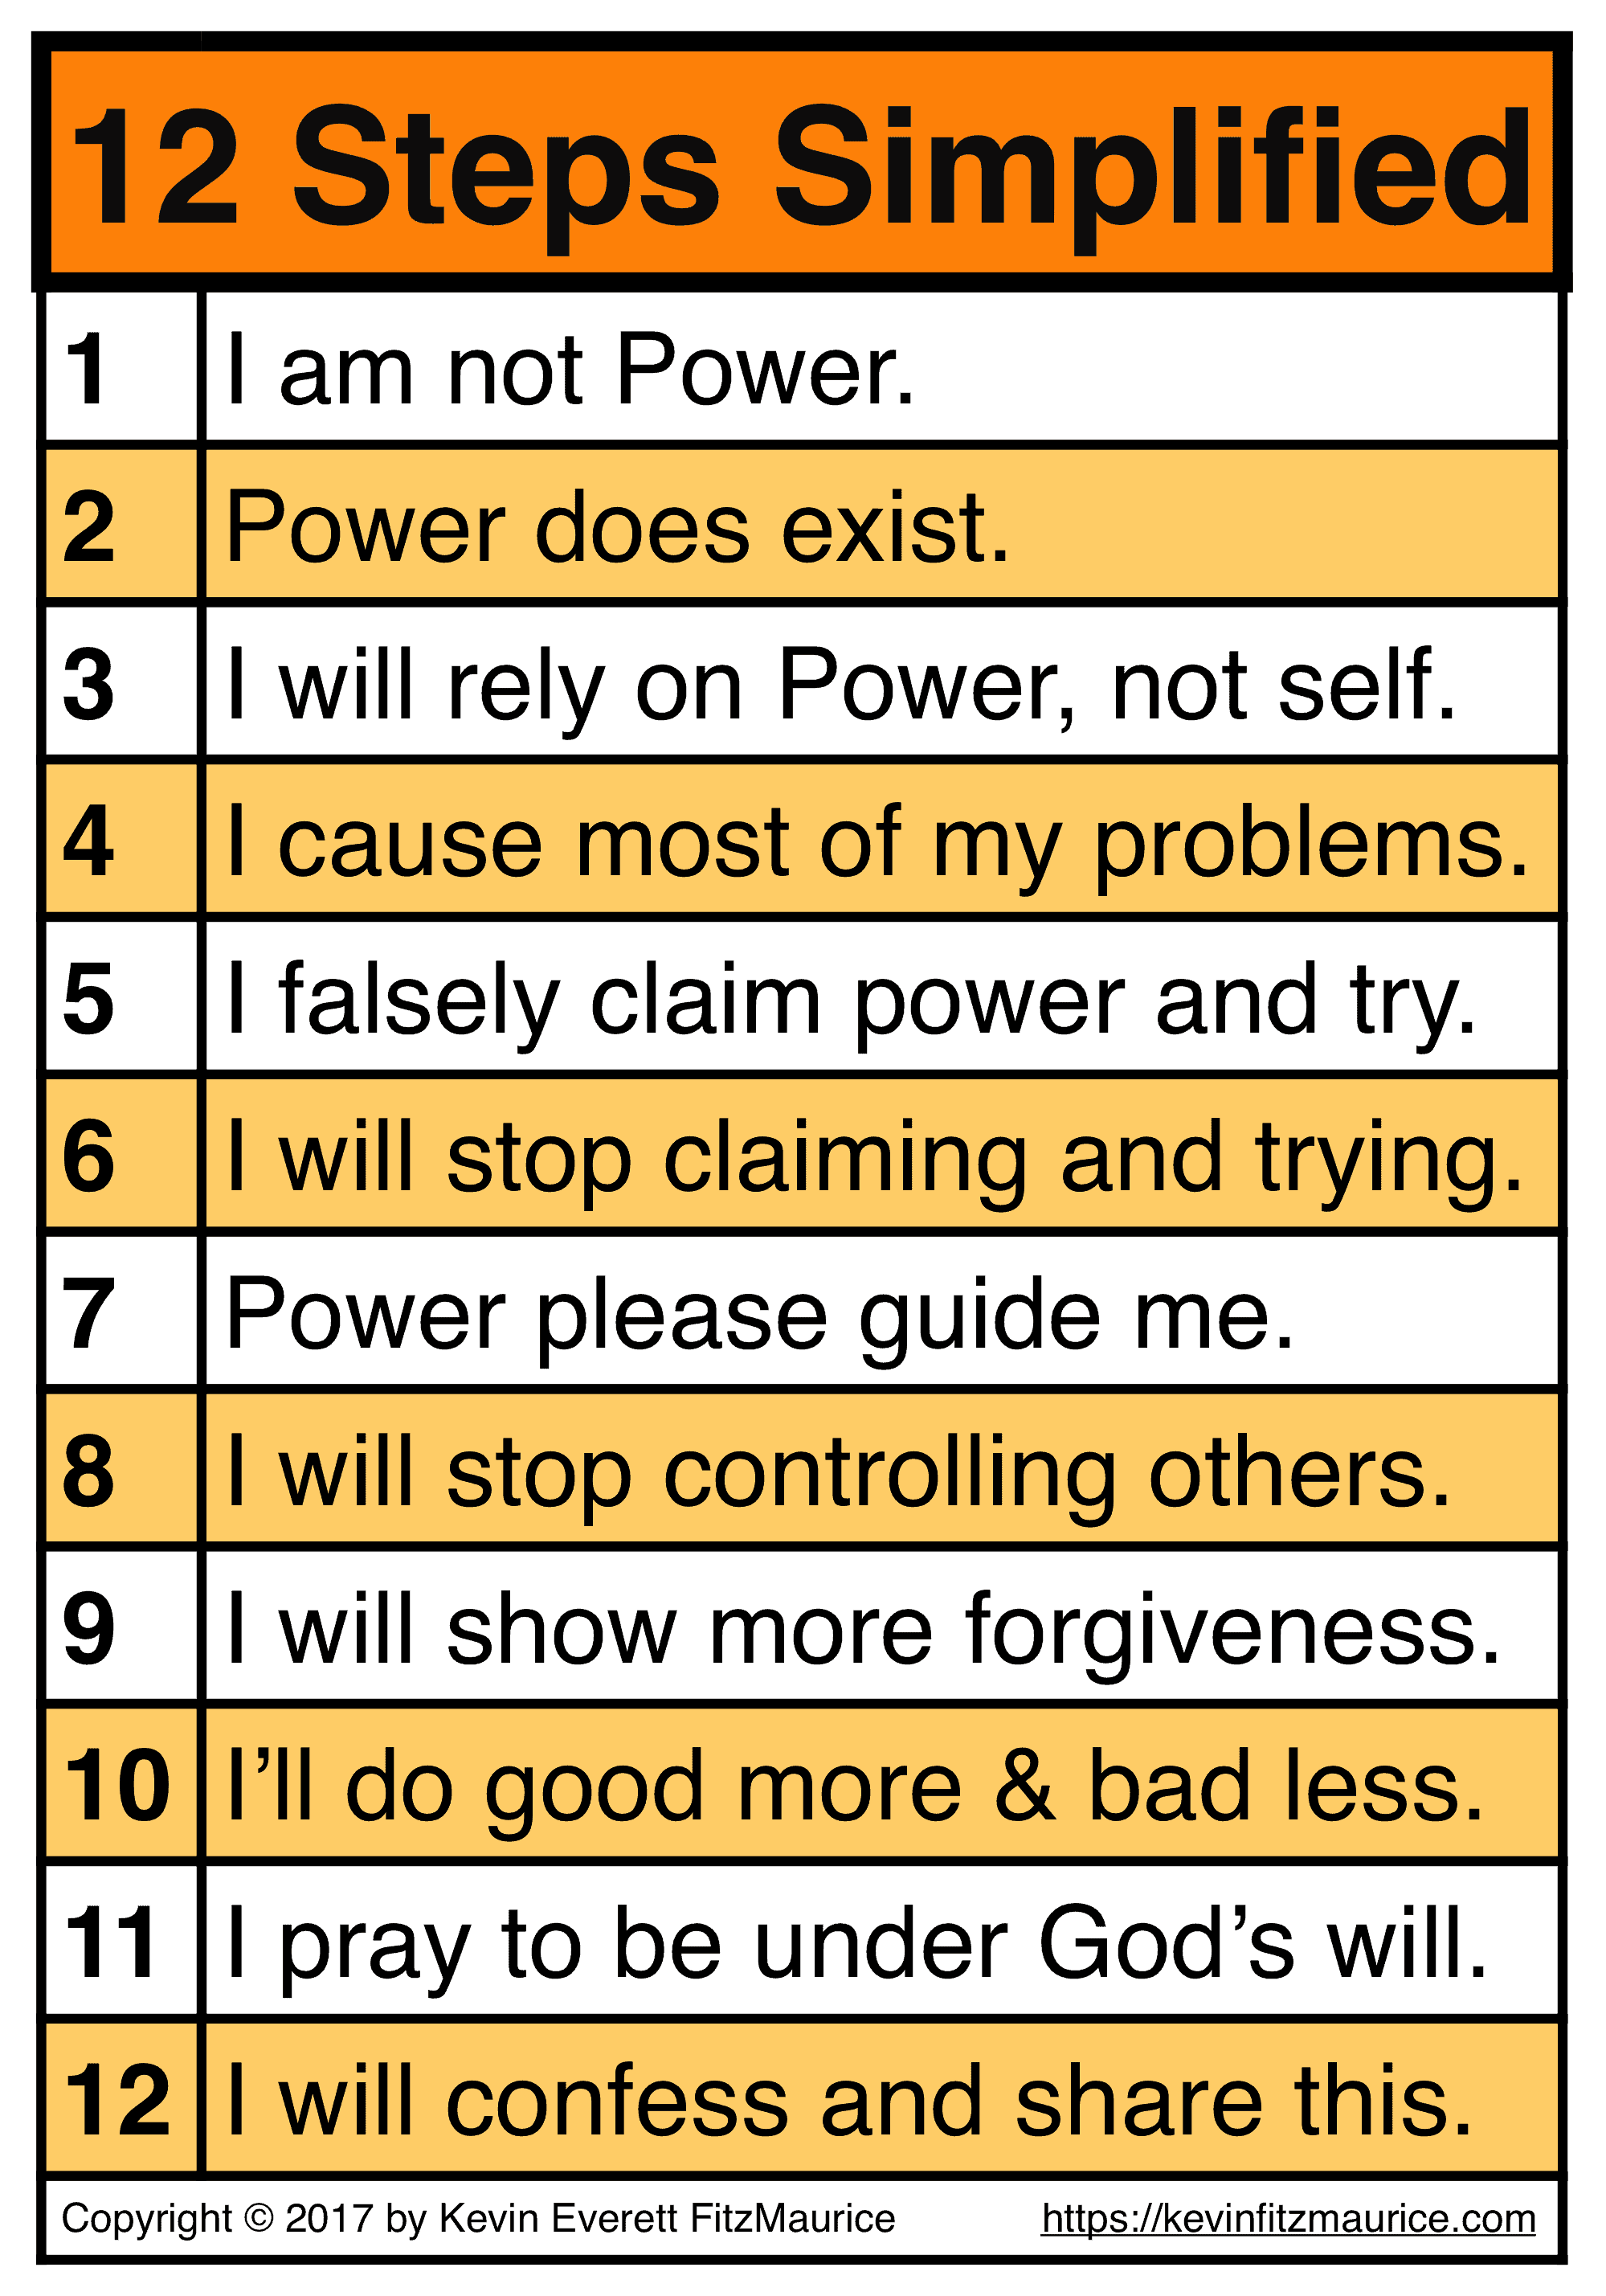 12 Steps of Recovery Simplified